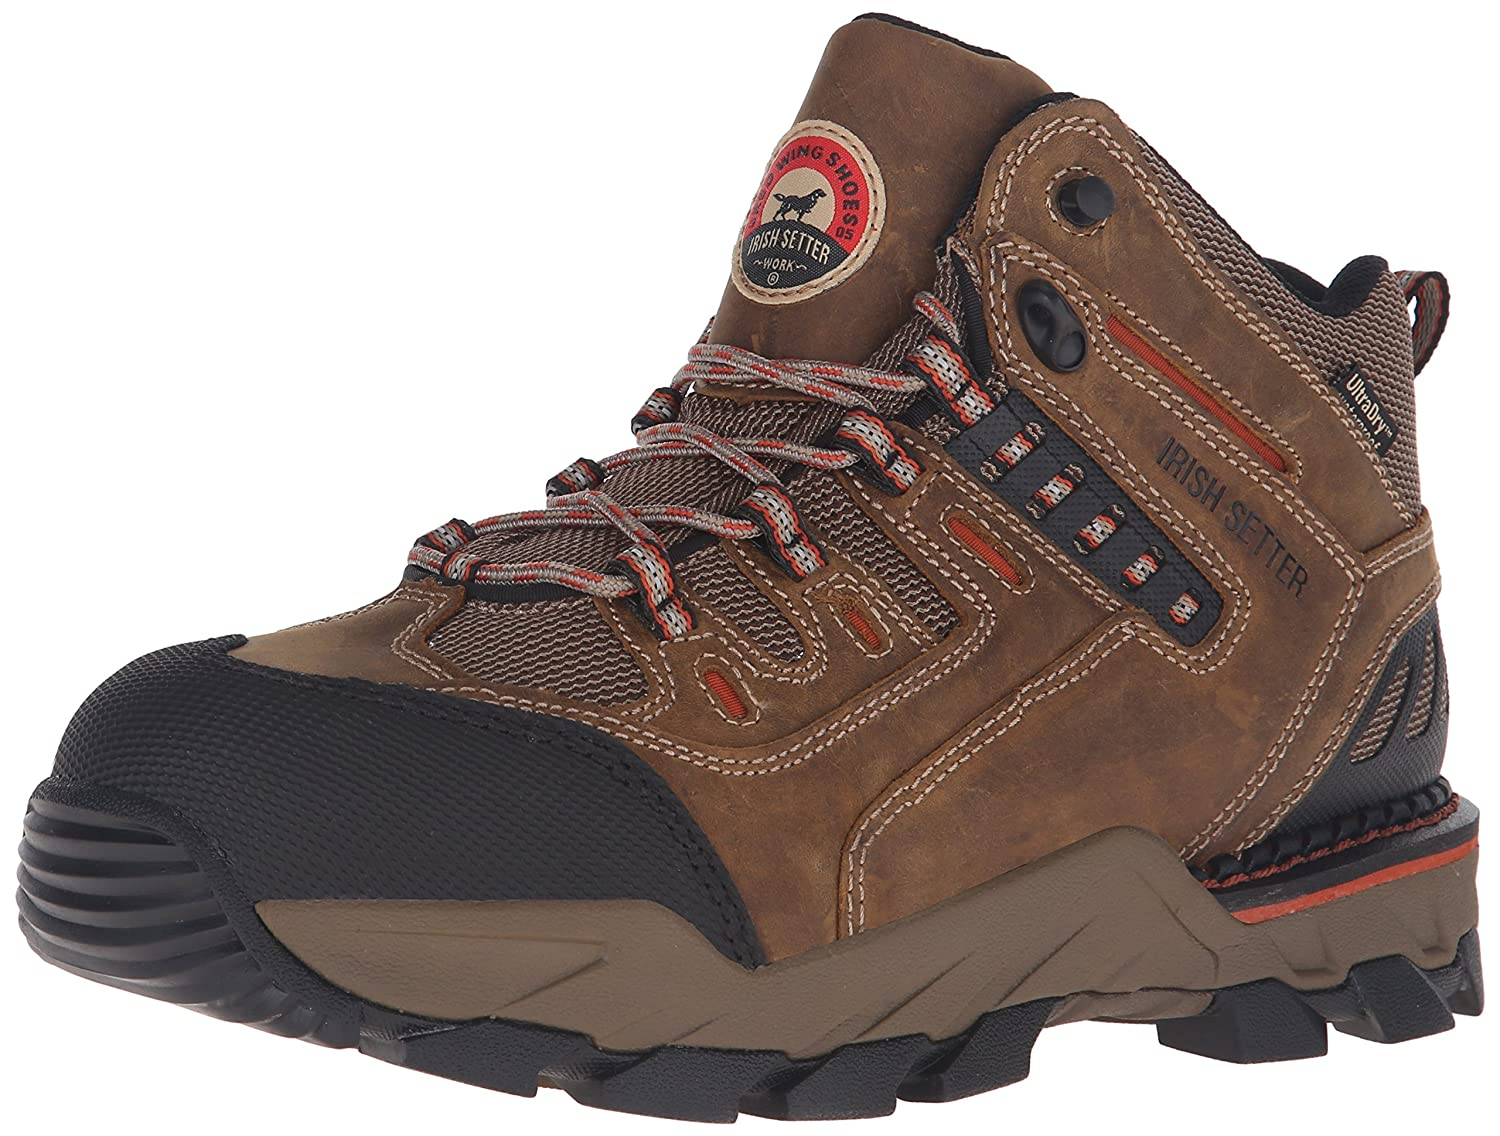 Irish Setter メンズ B00LAUTZ64 13 2E US|Brown/Rust Brown/Rust 13 2E US